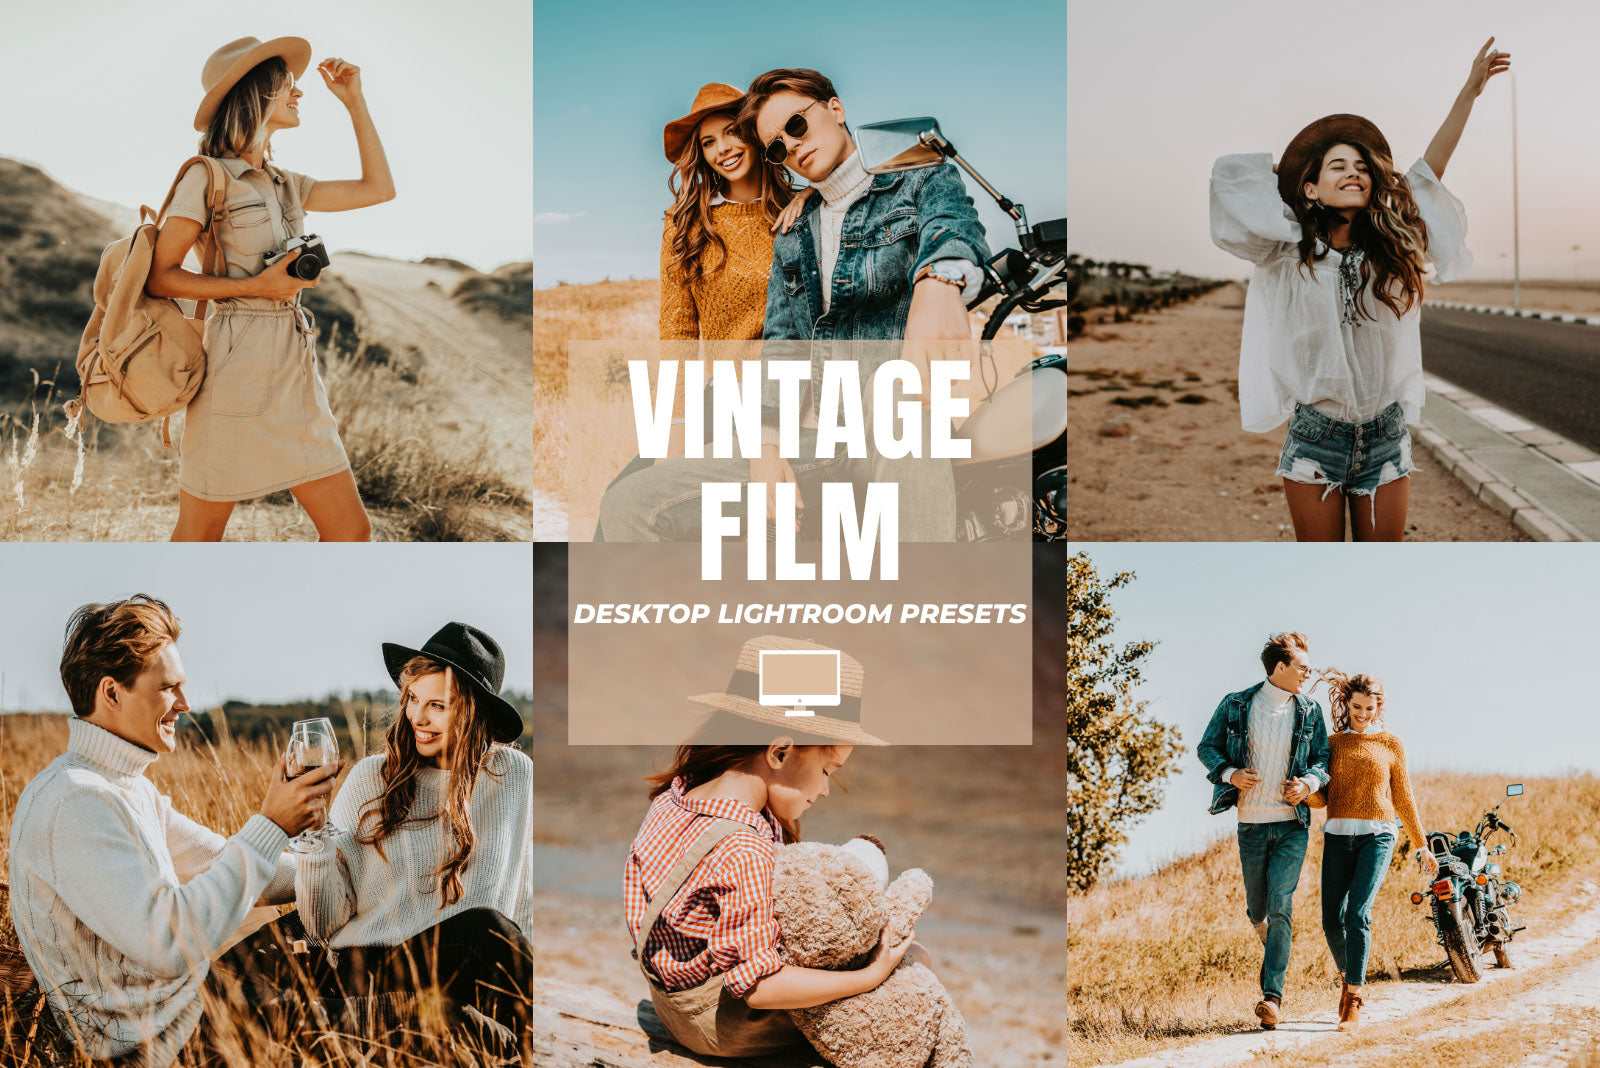 VINTAGE FILM DESKTOP LIGHTROOM PRESETS by The Viral Presets